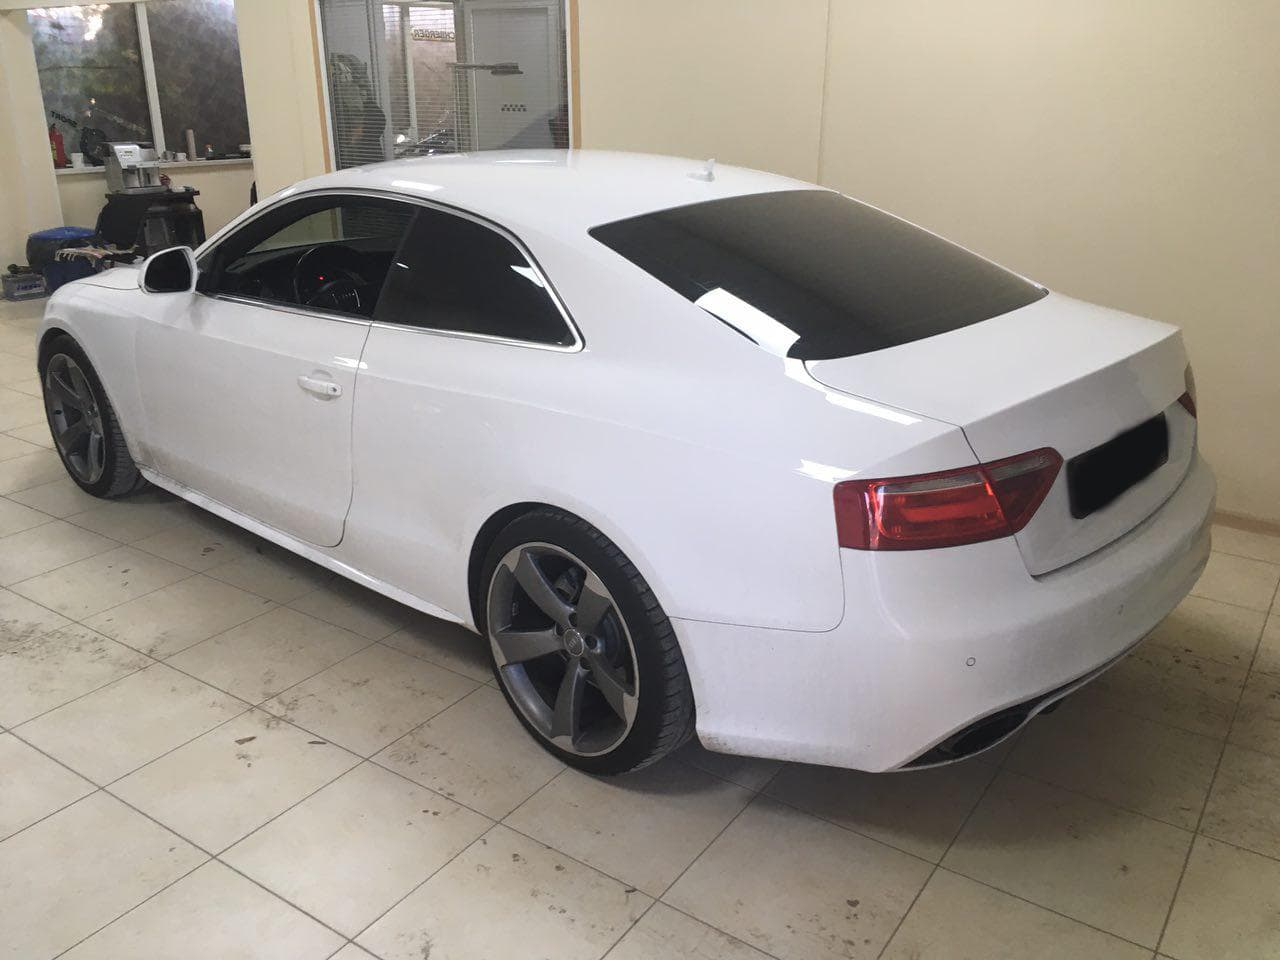 /Content/OurWorks/audi a5 3.0d_2.jpg